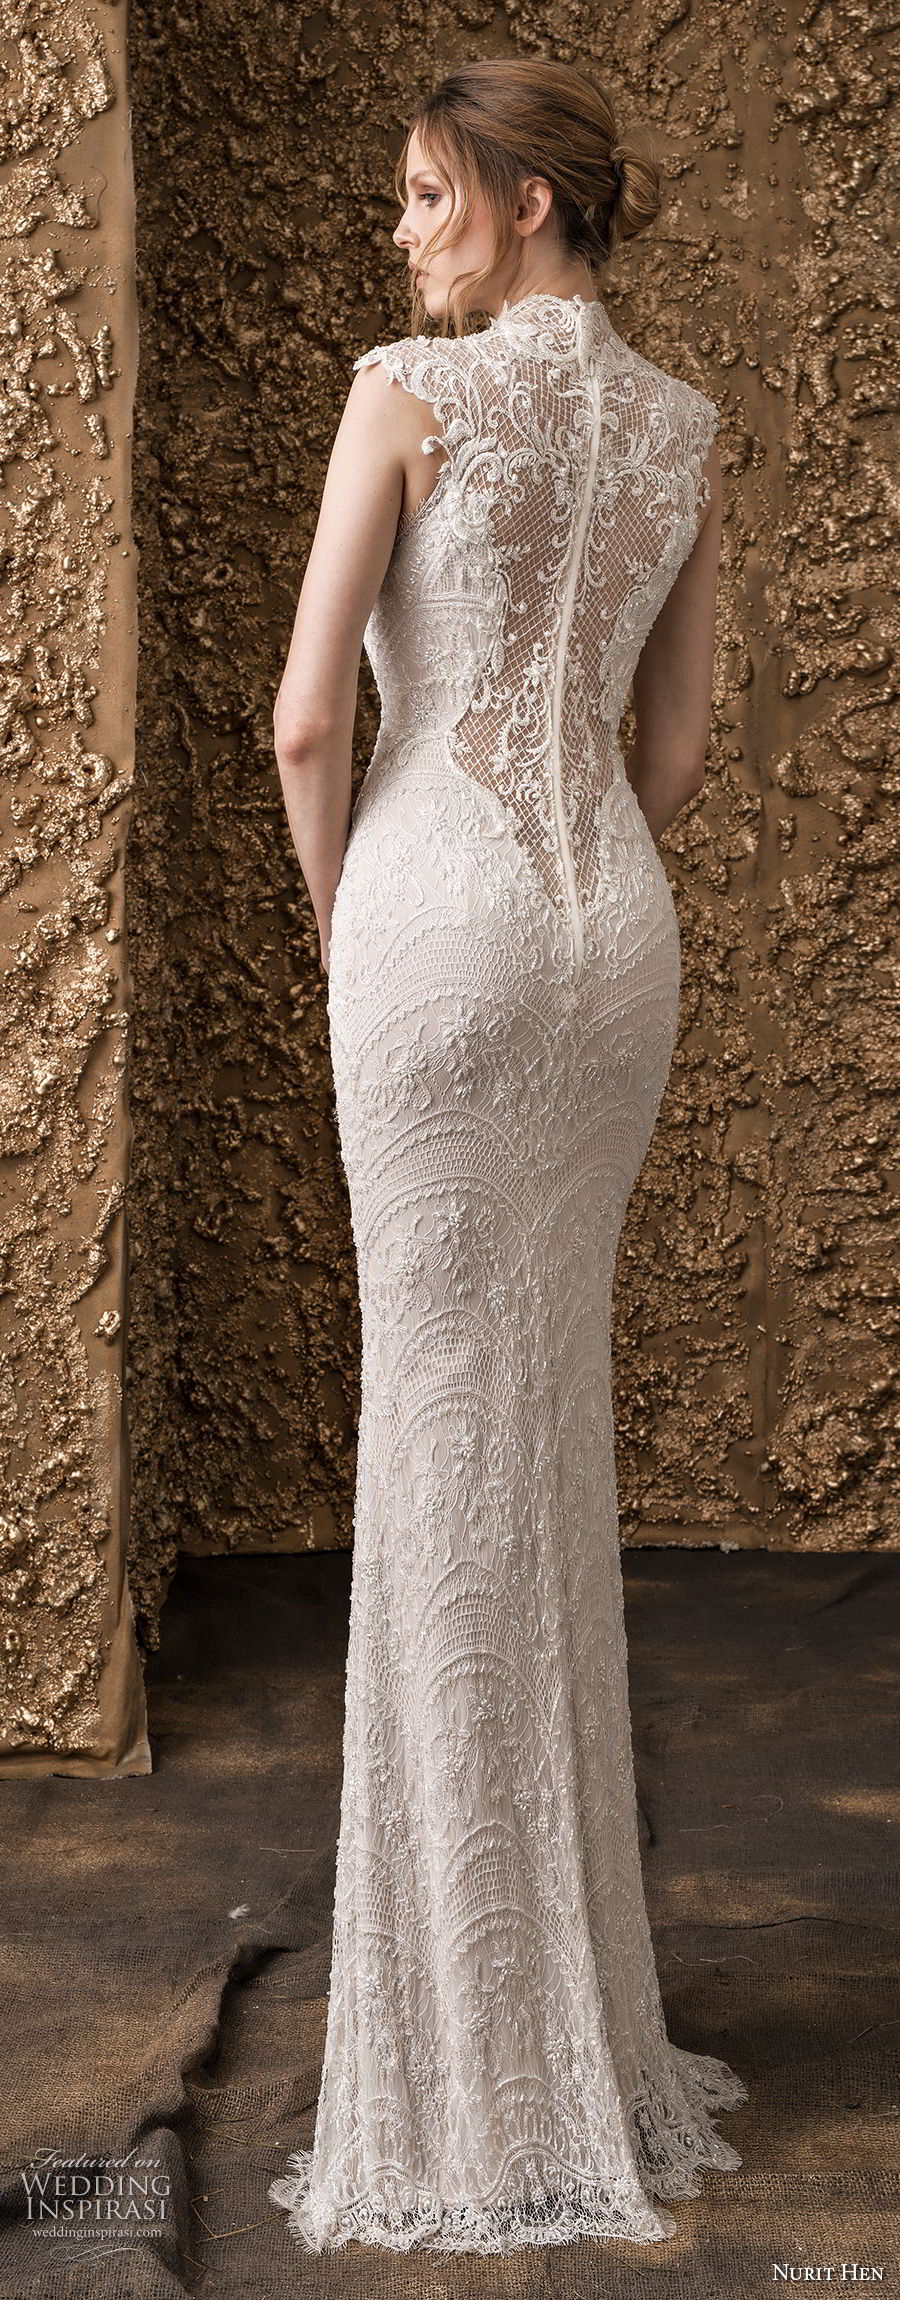 nurit hen 2018 bridal cap sleeves high jewel neck full embellishment elegant sheath wedding dress lace back sweep train (15) bv